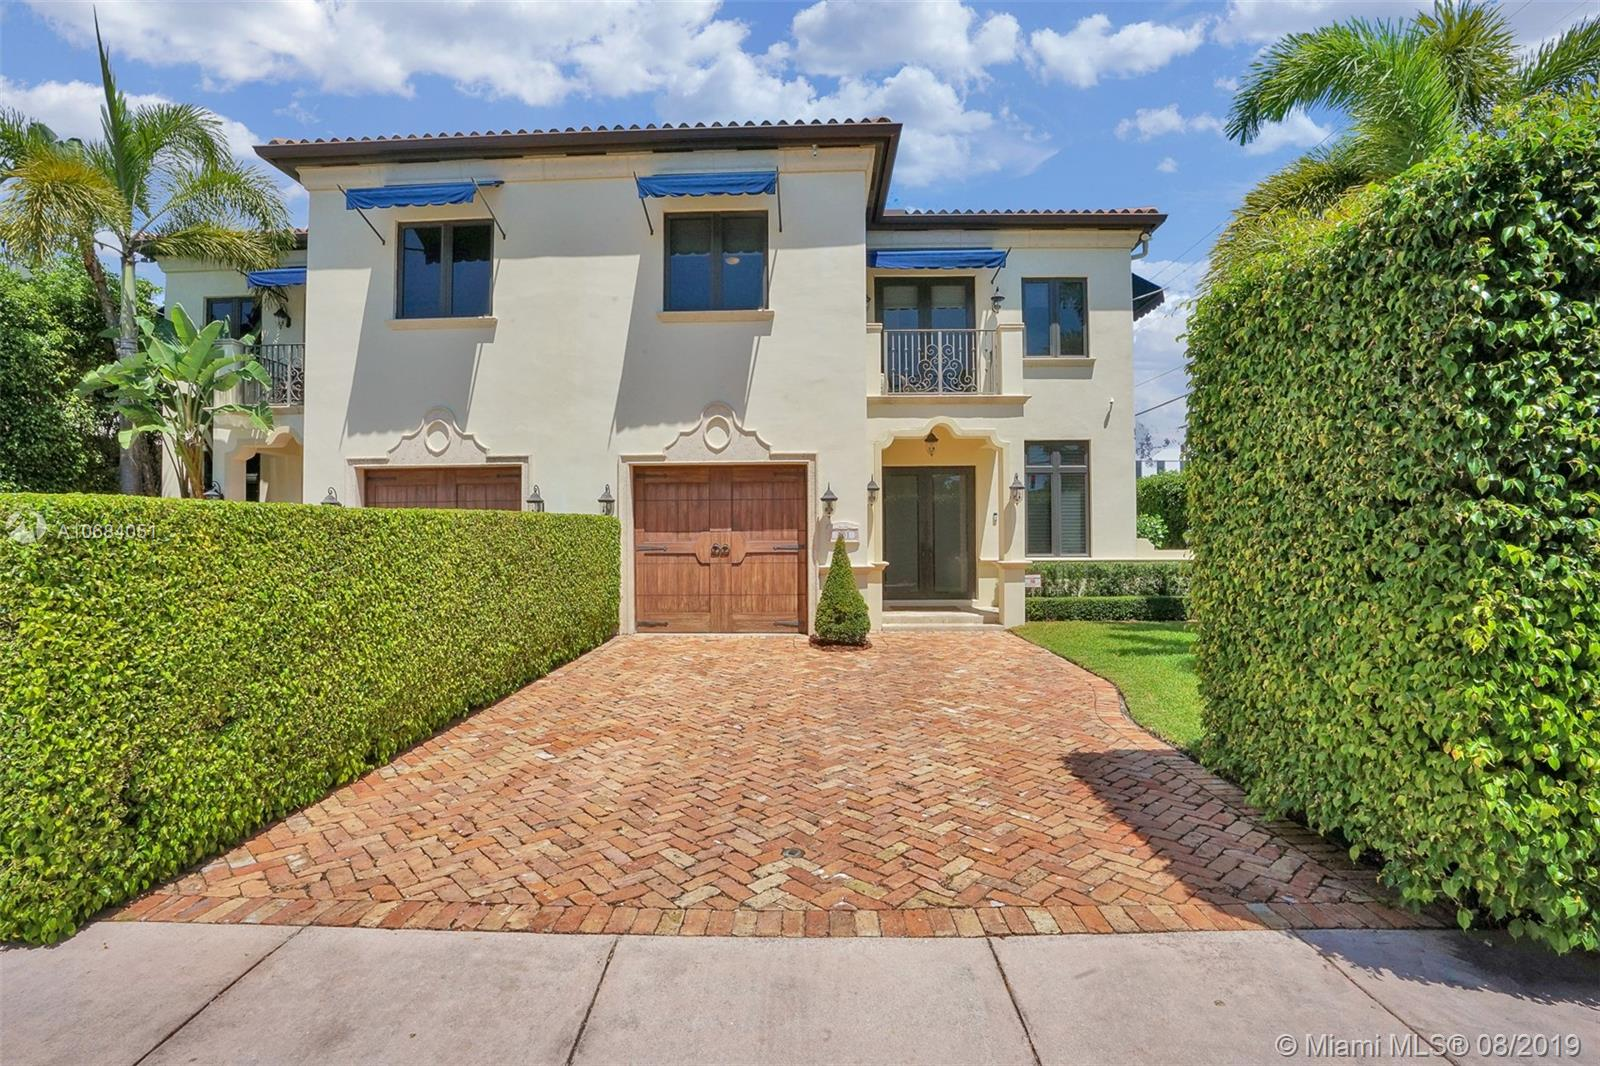 Listing A10684051 - Large Photo # 2